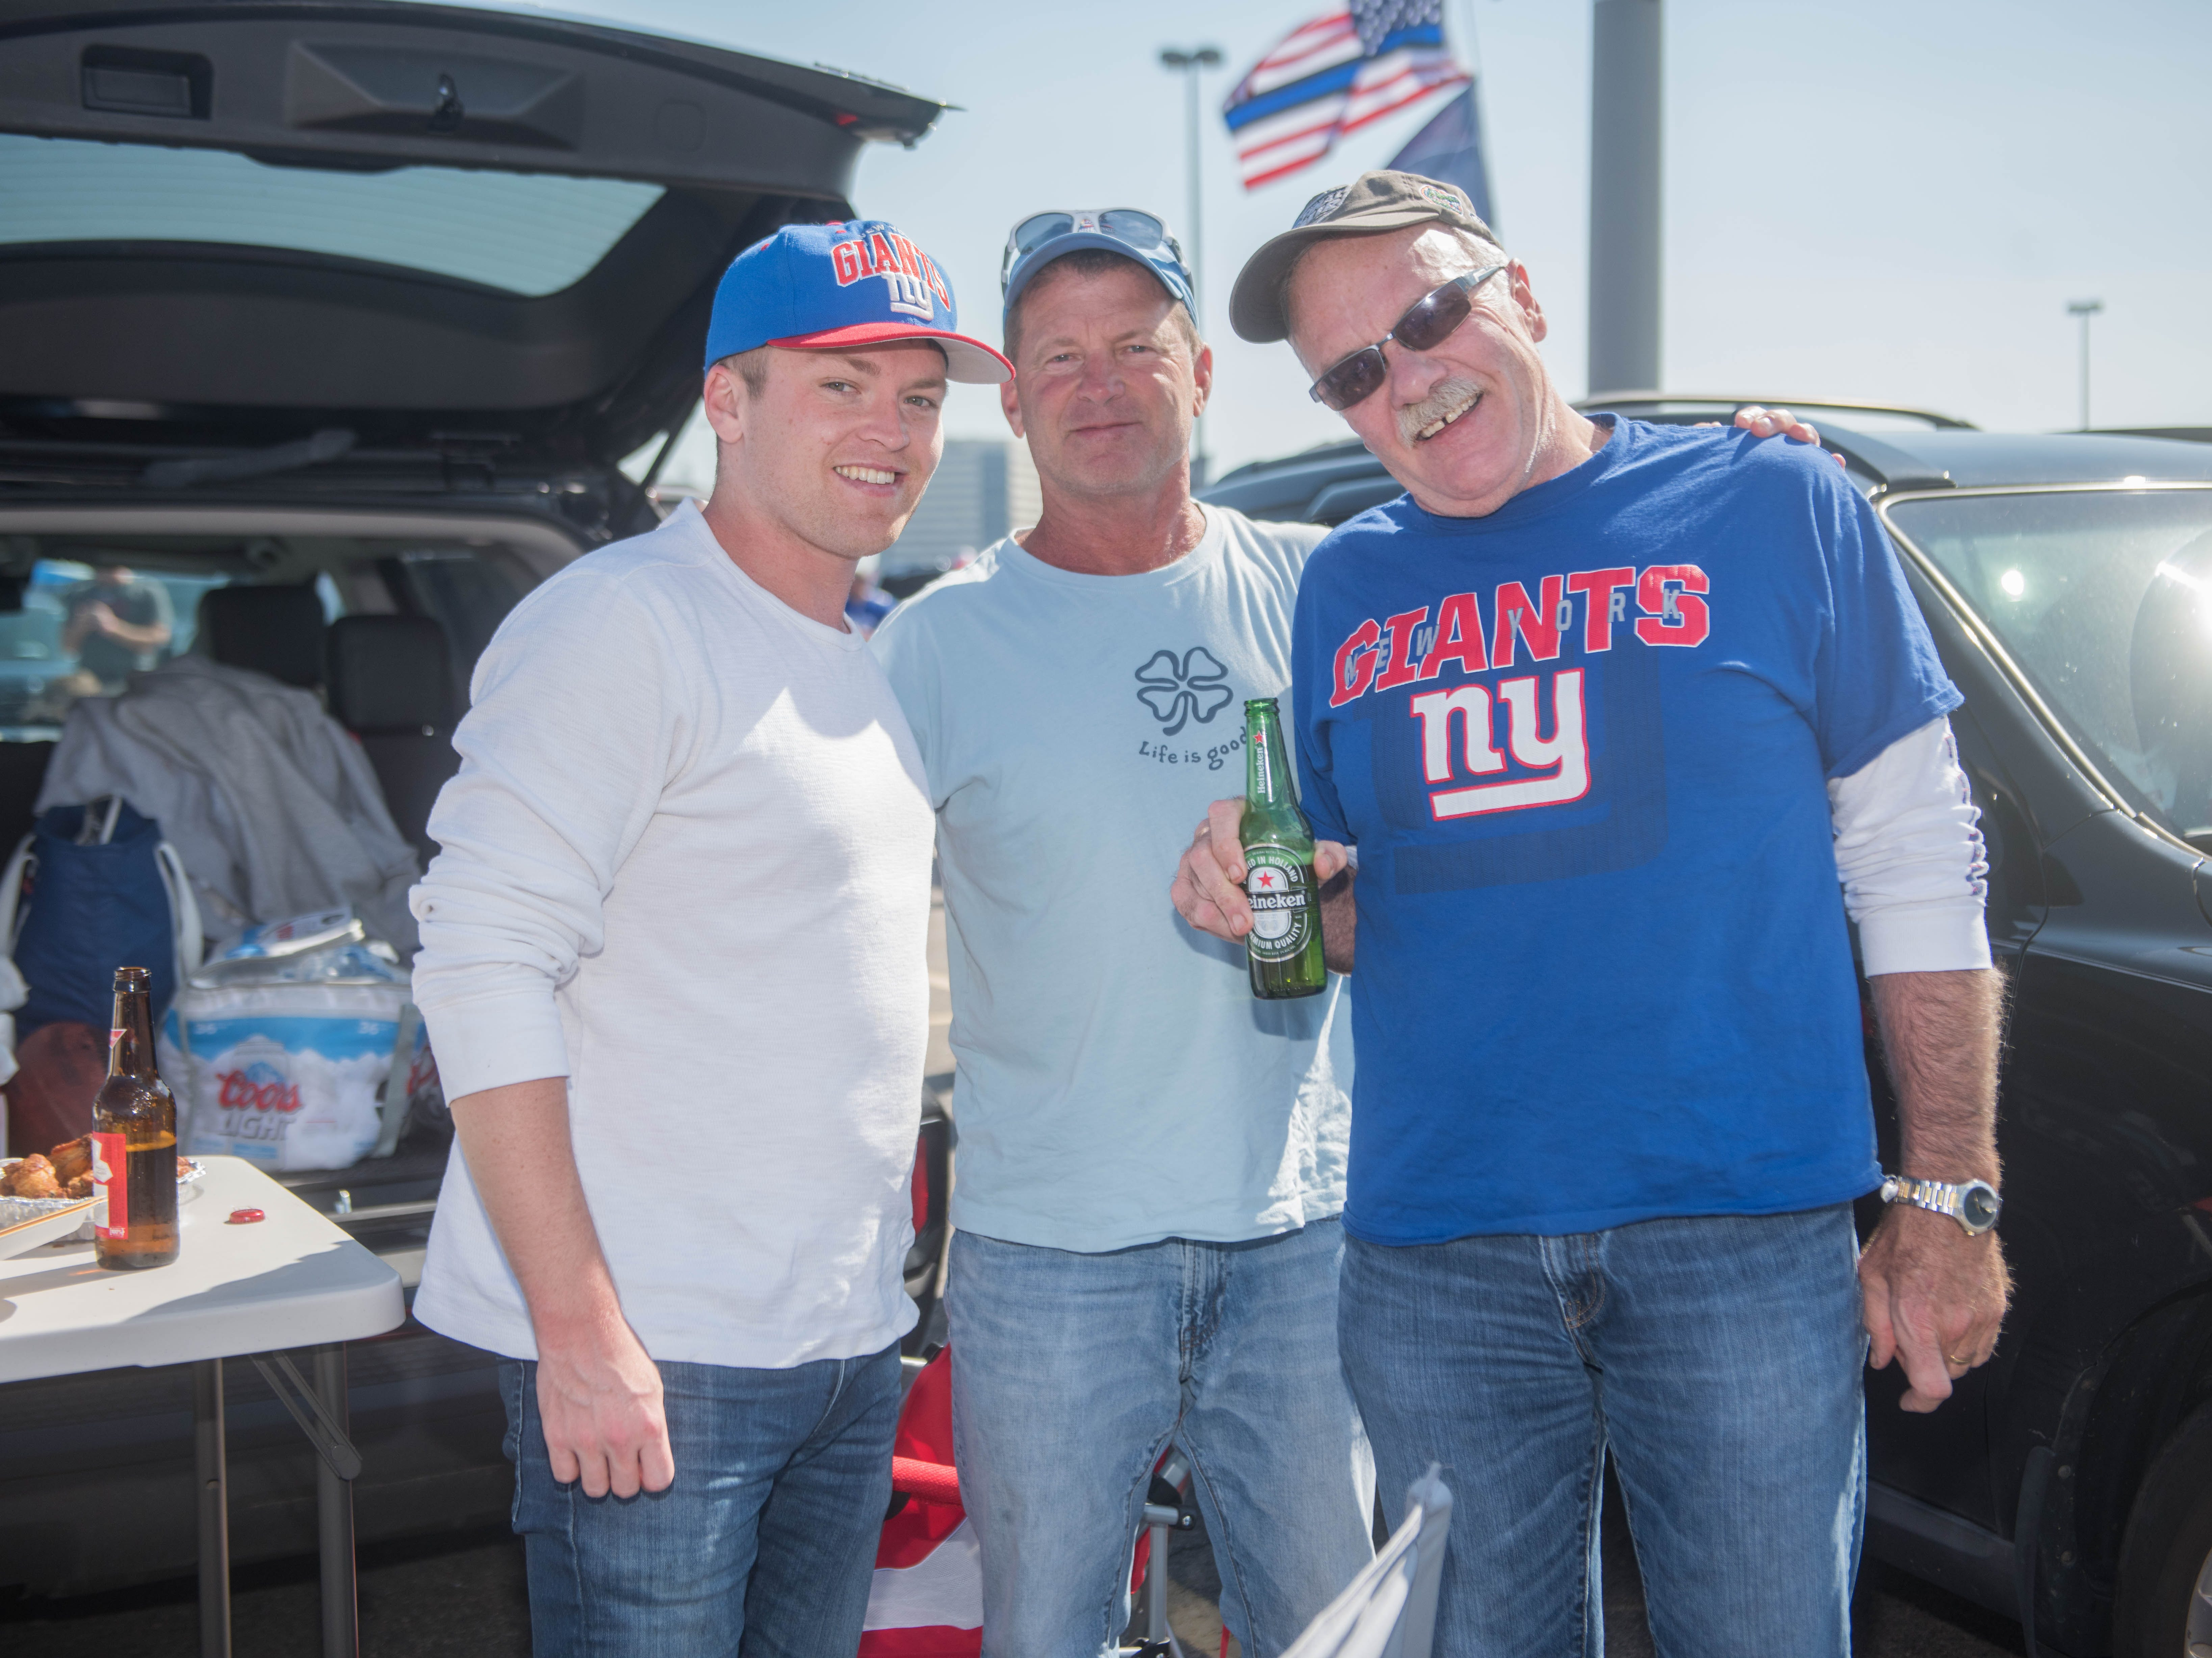 Bob Shilling Jr, Bob Shilling Sr and Kevin Tunney at the Giants vs. Saints tailgate party, Sunday, Sept. 30, 2018.